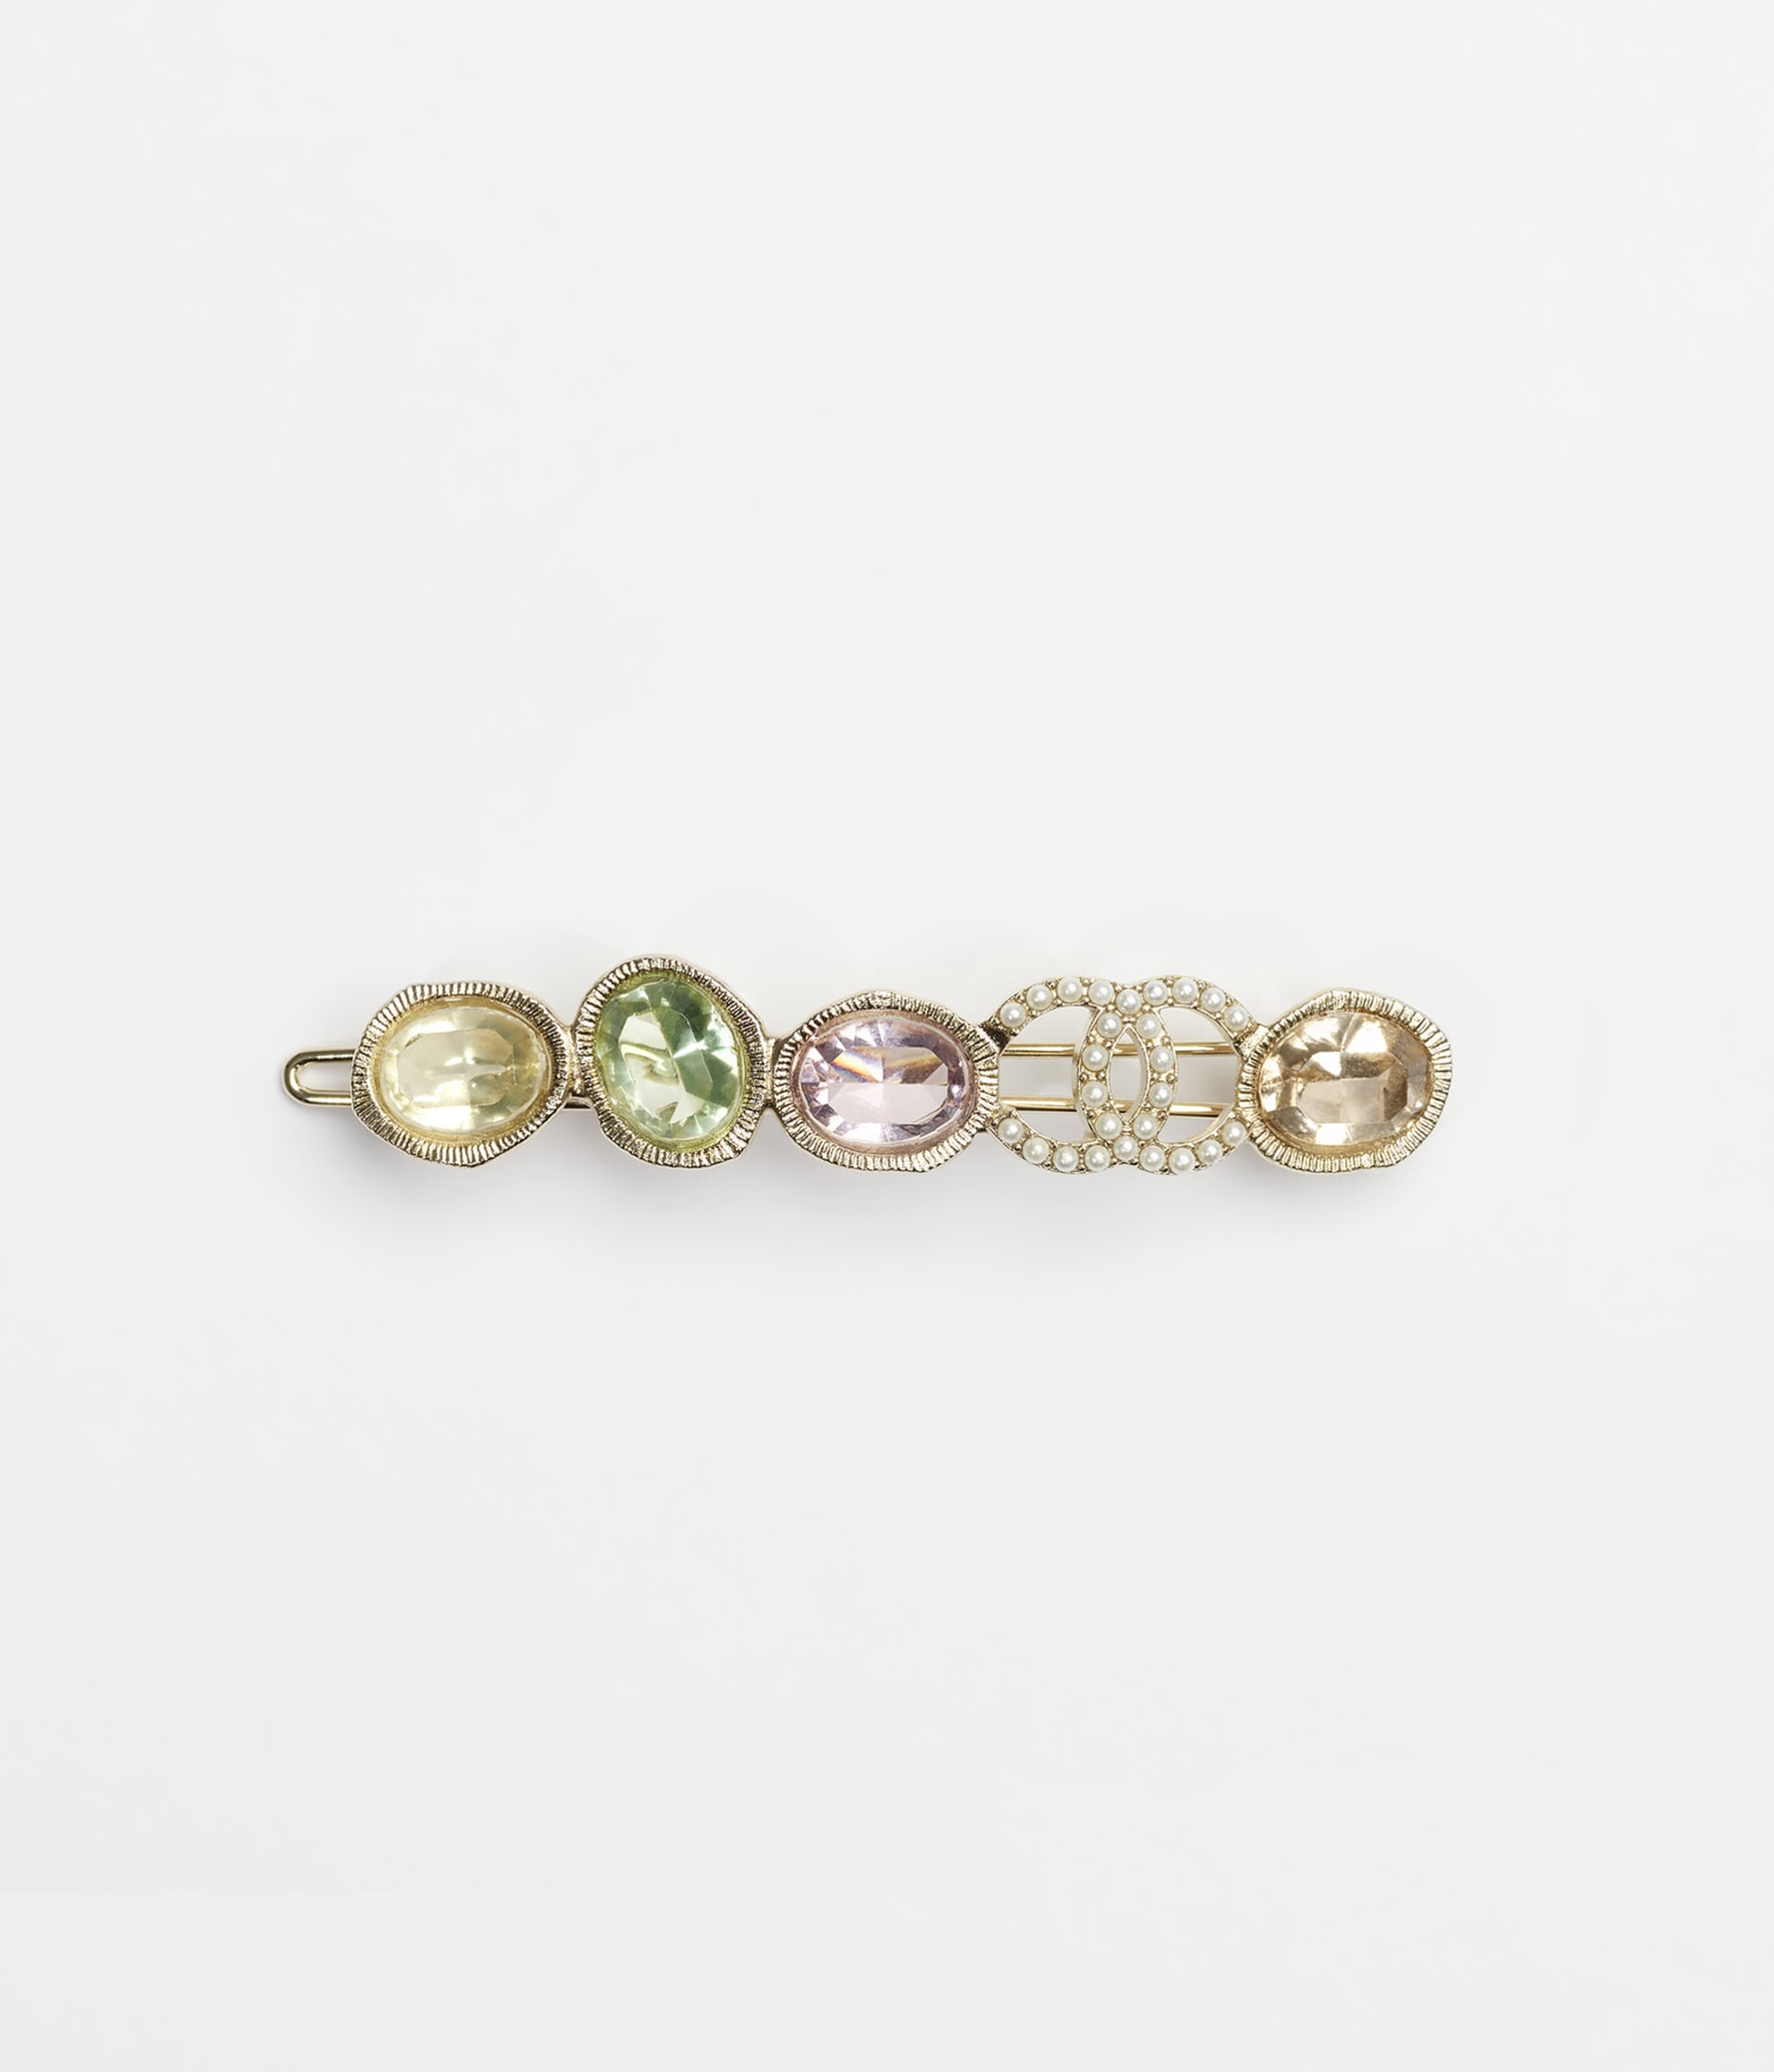 image 1 - Hair Clip - Metal, Glass Pearls & Strass - Gold, Multicolor & Pearly White